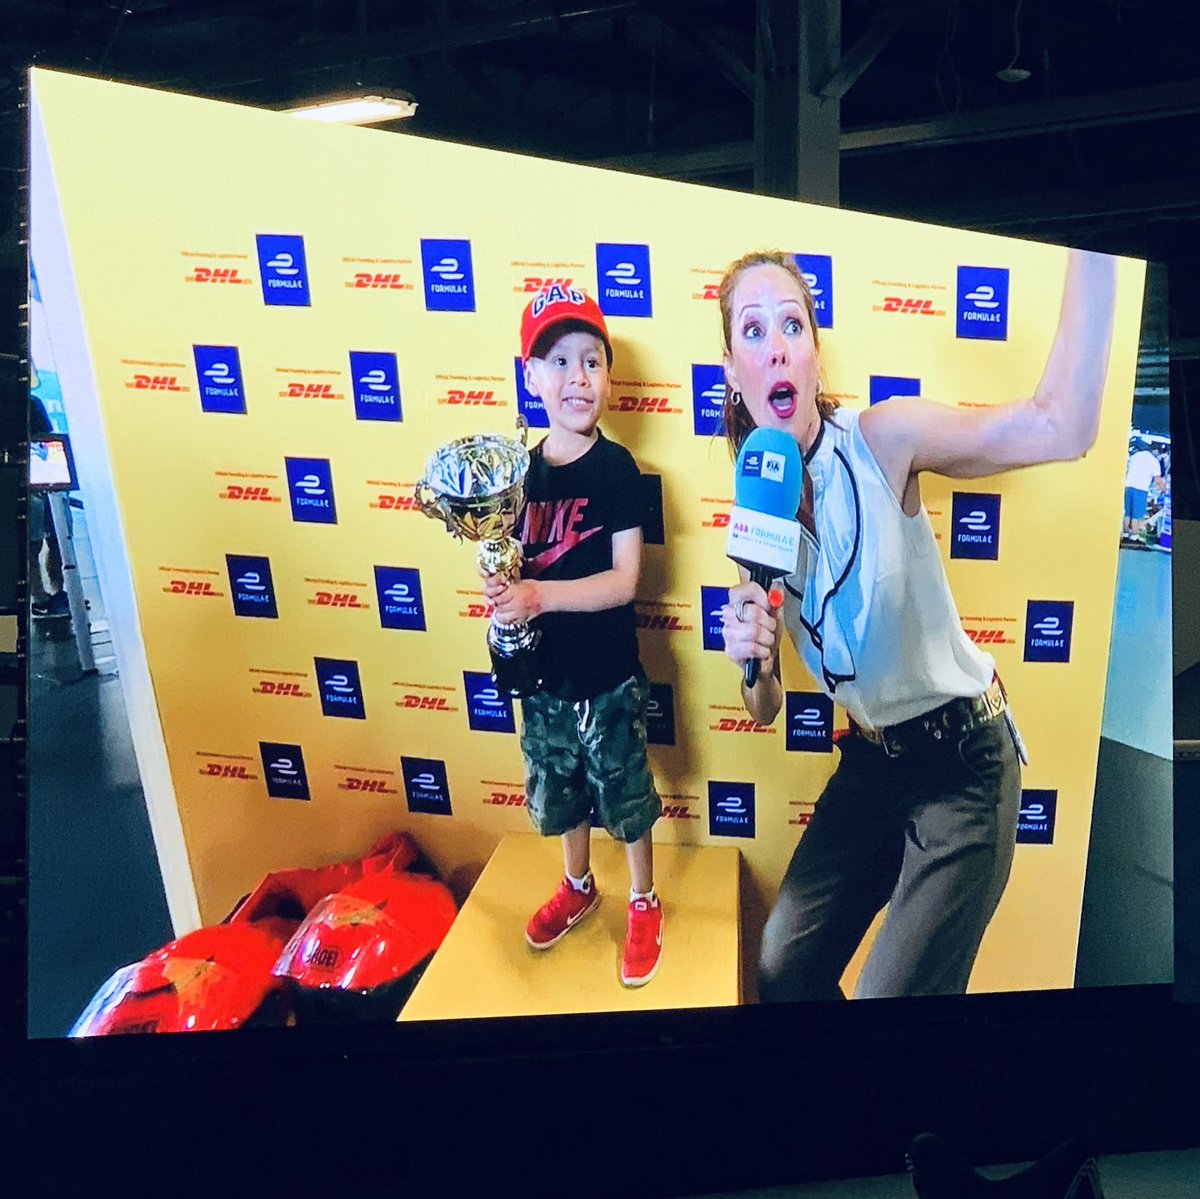 Okay, no, this little boy didn't win the @FIAFormulaE Championship, @JeanEricVergne did! 🏆 And what a thrill it was to announce him to the podium for the second year in a row! 🎉 🎉MANY CONGRATS TO YOU and THE TEAM!! 🎉 #NYCePrix @DSTECHEETAH 🏆@DHL_Motorsports 🏎